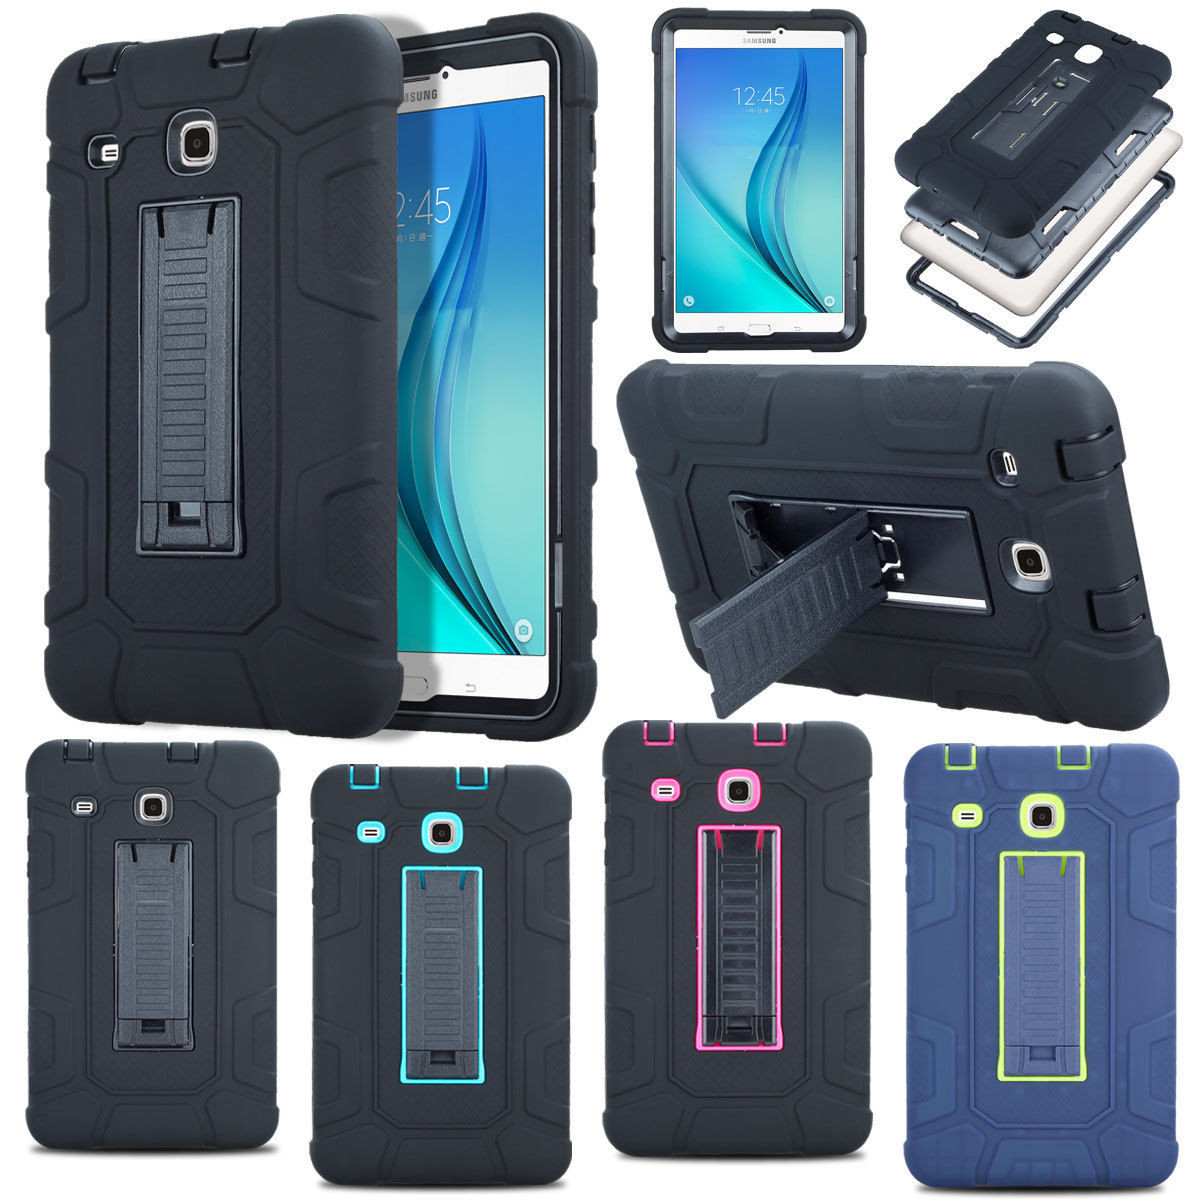 buy online 52d54 303b7 Stylish Shockproof Samsung Galaxy Tab A/A6 10.1 Case Cover T580 T585